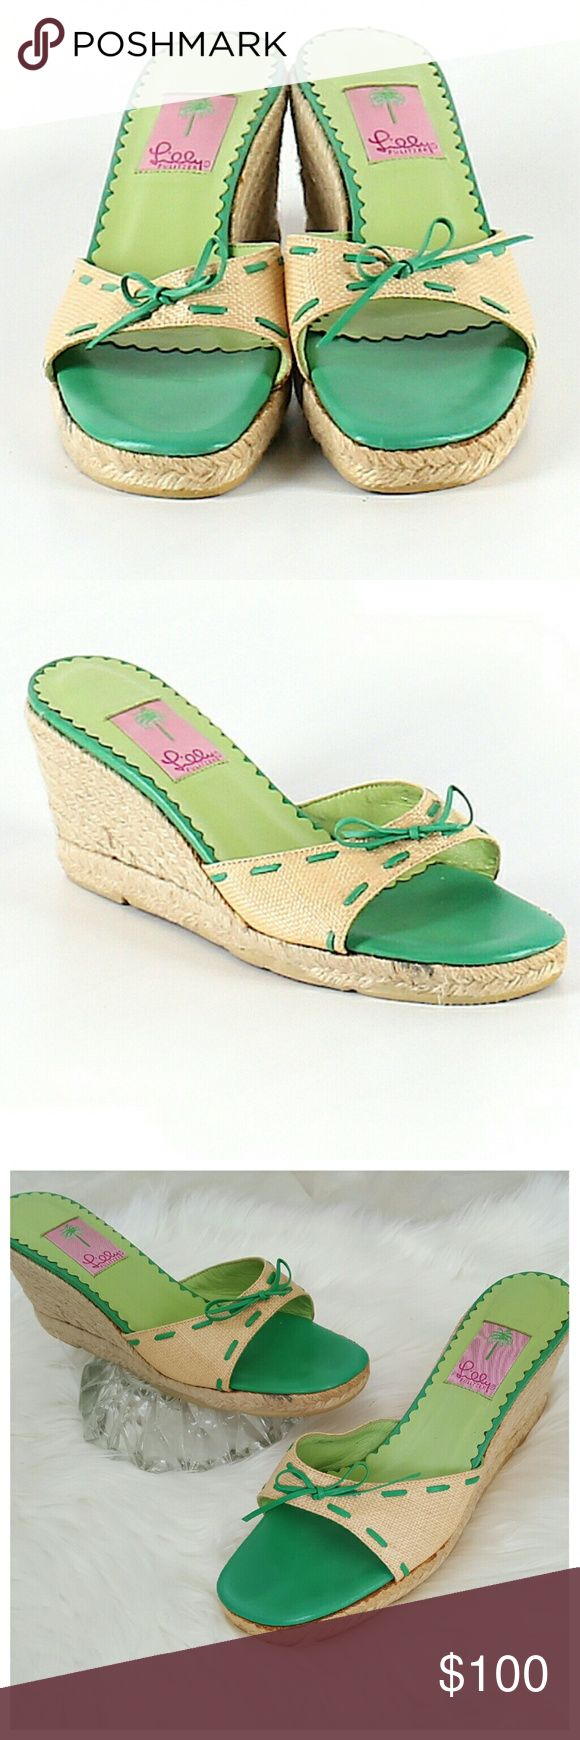 Lilly Pulitzer Espadrille Green Wedges 9.5 Espadrille, slip-on Wedges by Lilly Pulitzer. Size 9.5. Green & light tan with green tie bow detail. Overall very good condition with minor wear, as shown in pics. Lilly Pulitzer Shoes Espadrilles